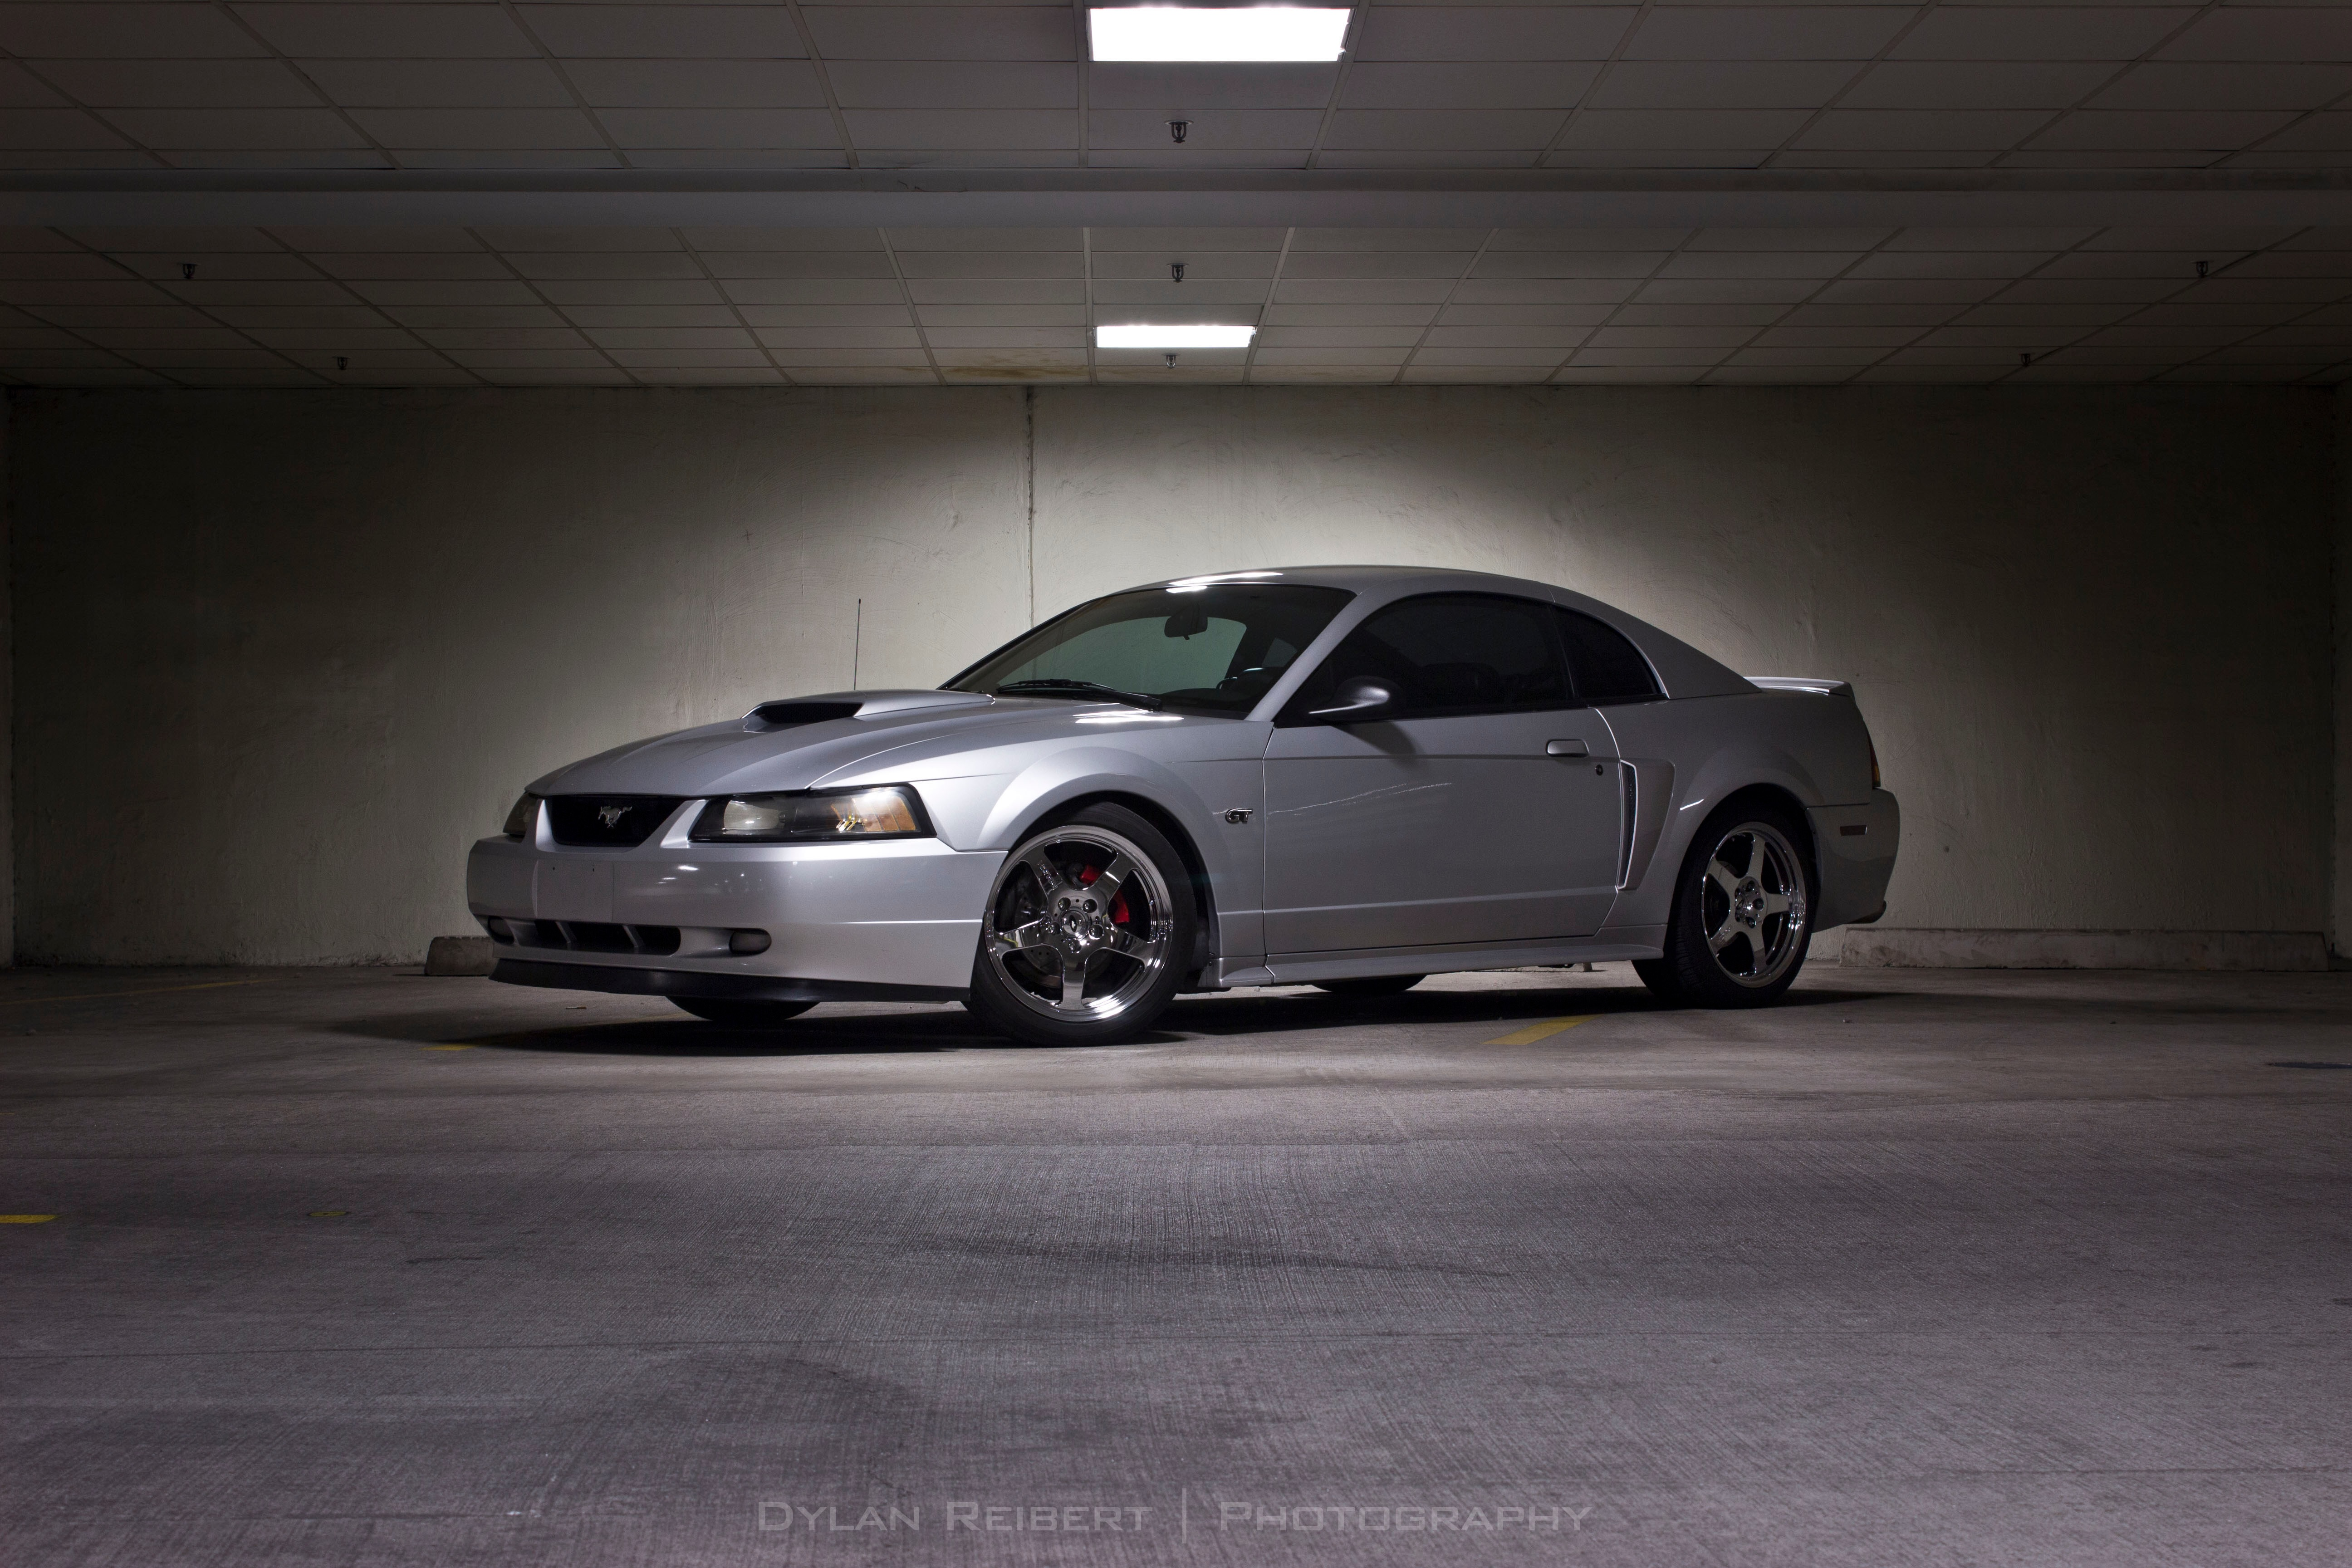 Stage 3's 2000 Mustang GT Project Car